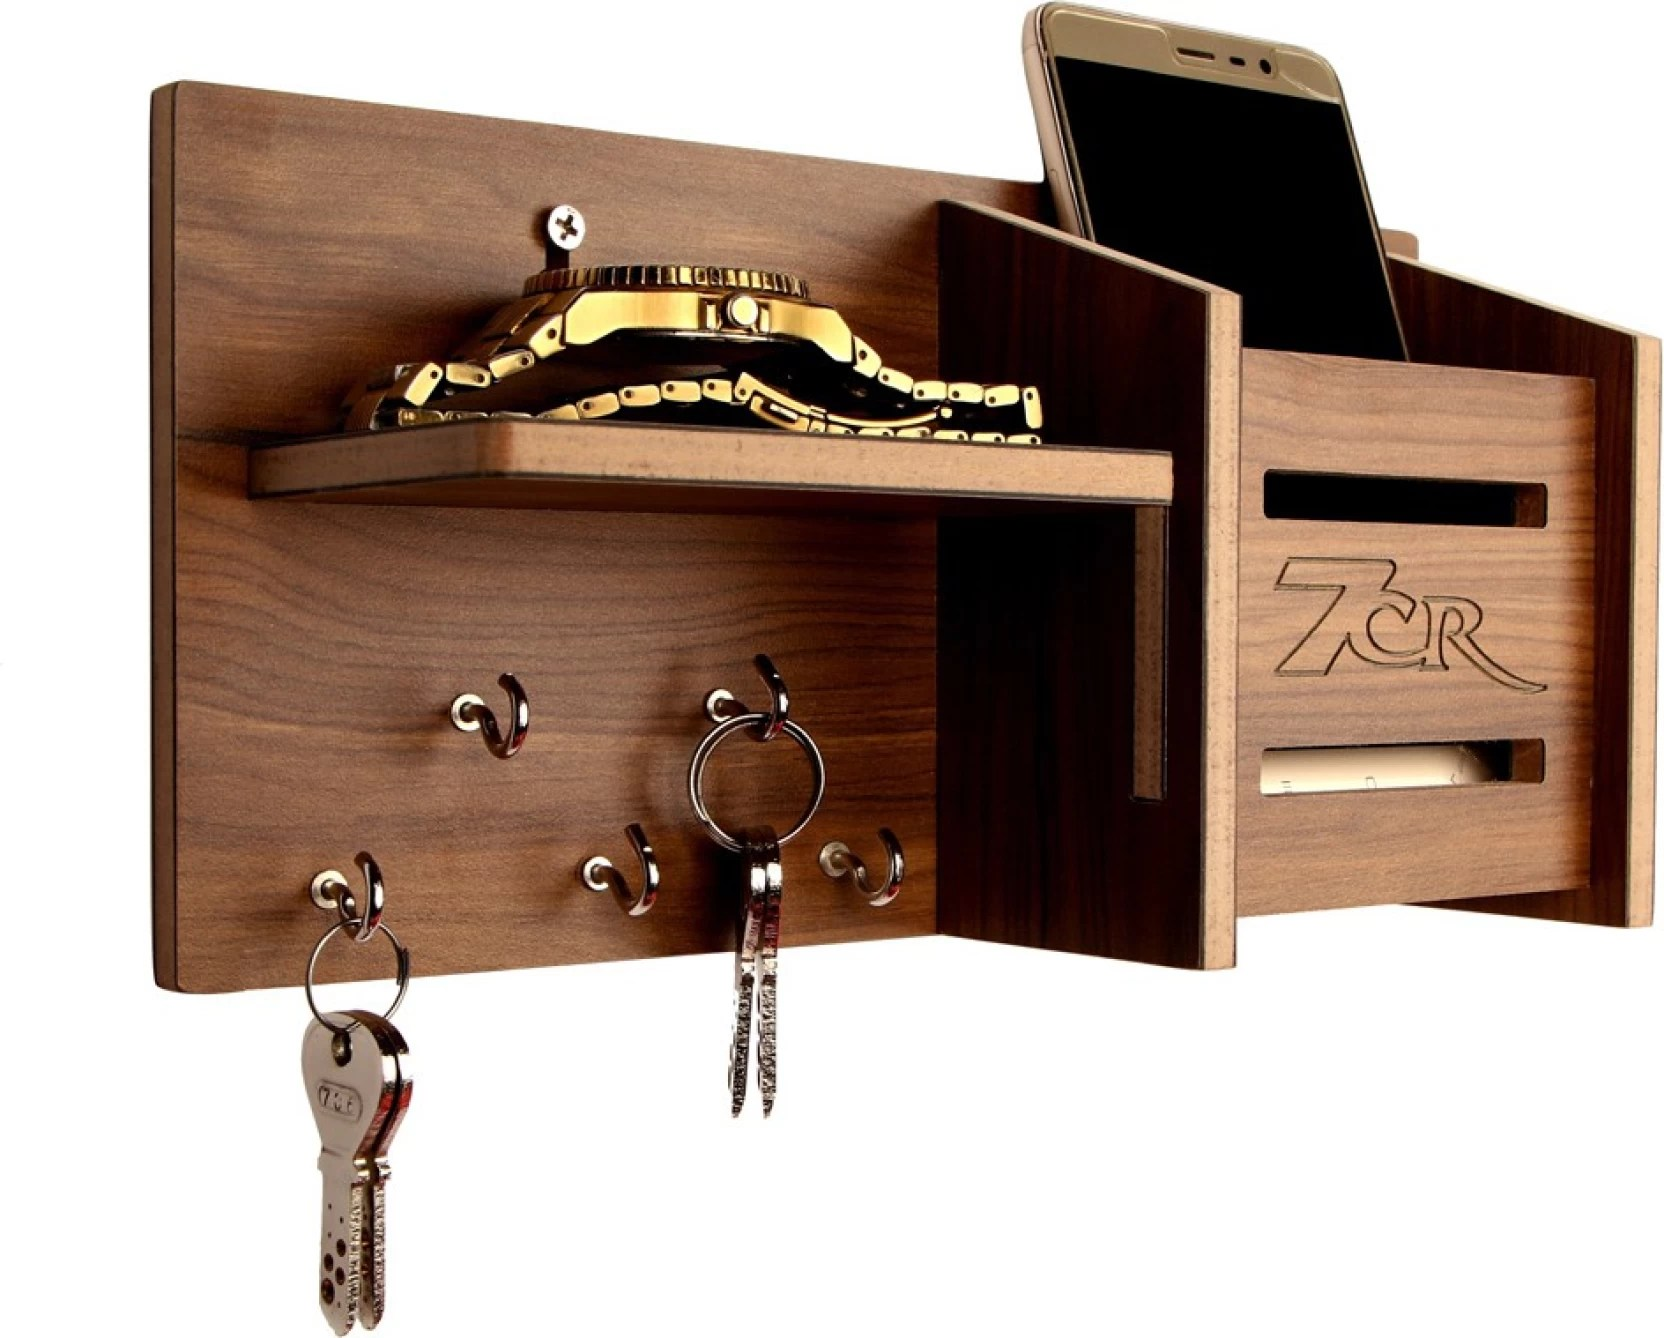 Wooden Key Holder With Shelf 7cr 5050 Wooden Wall Shelf Price In India Buy 7cr 5050